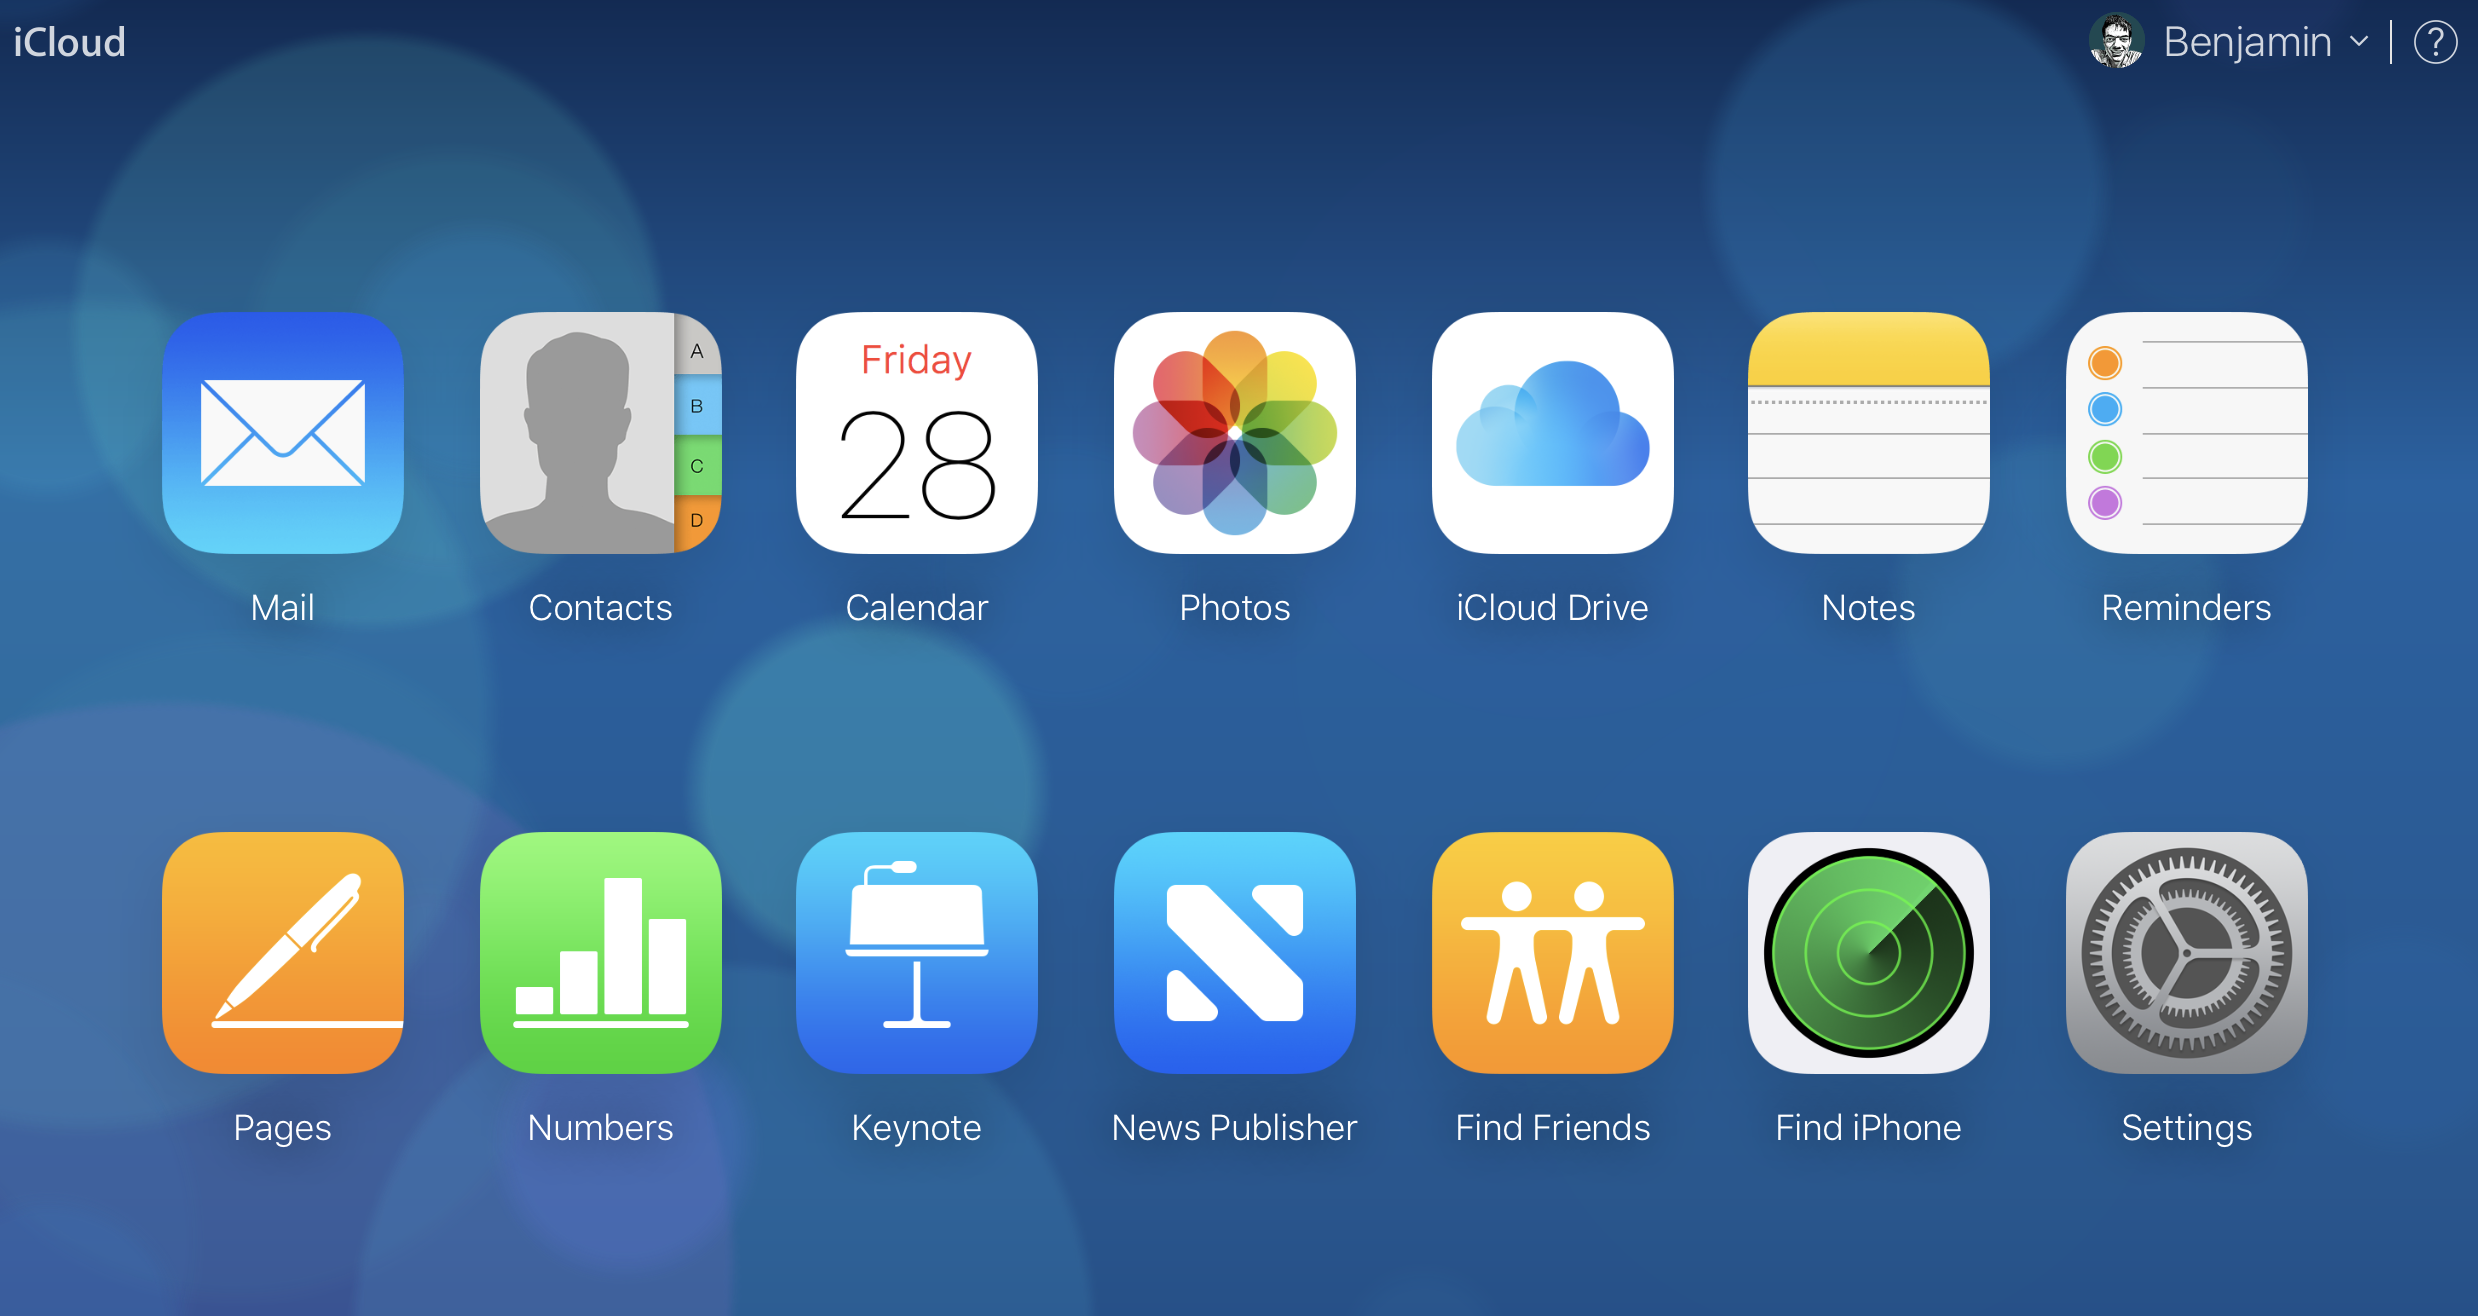 Apple Updates Icloud Com Wallpaper From Static Gradient To